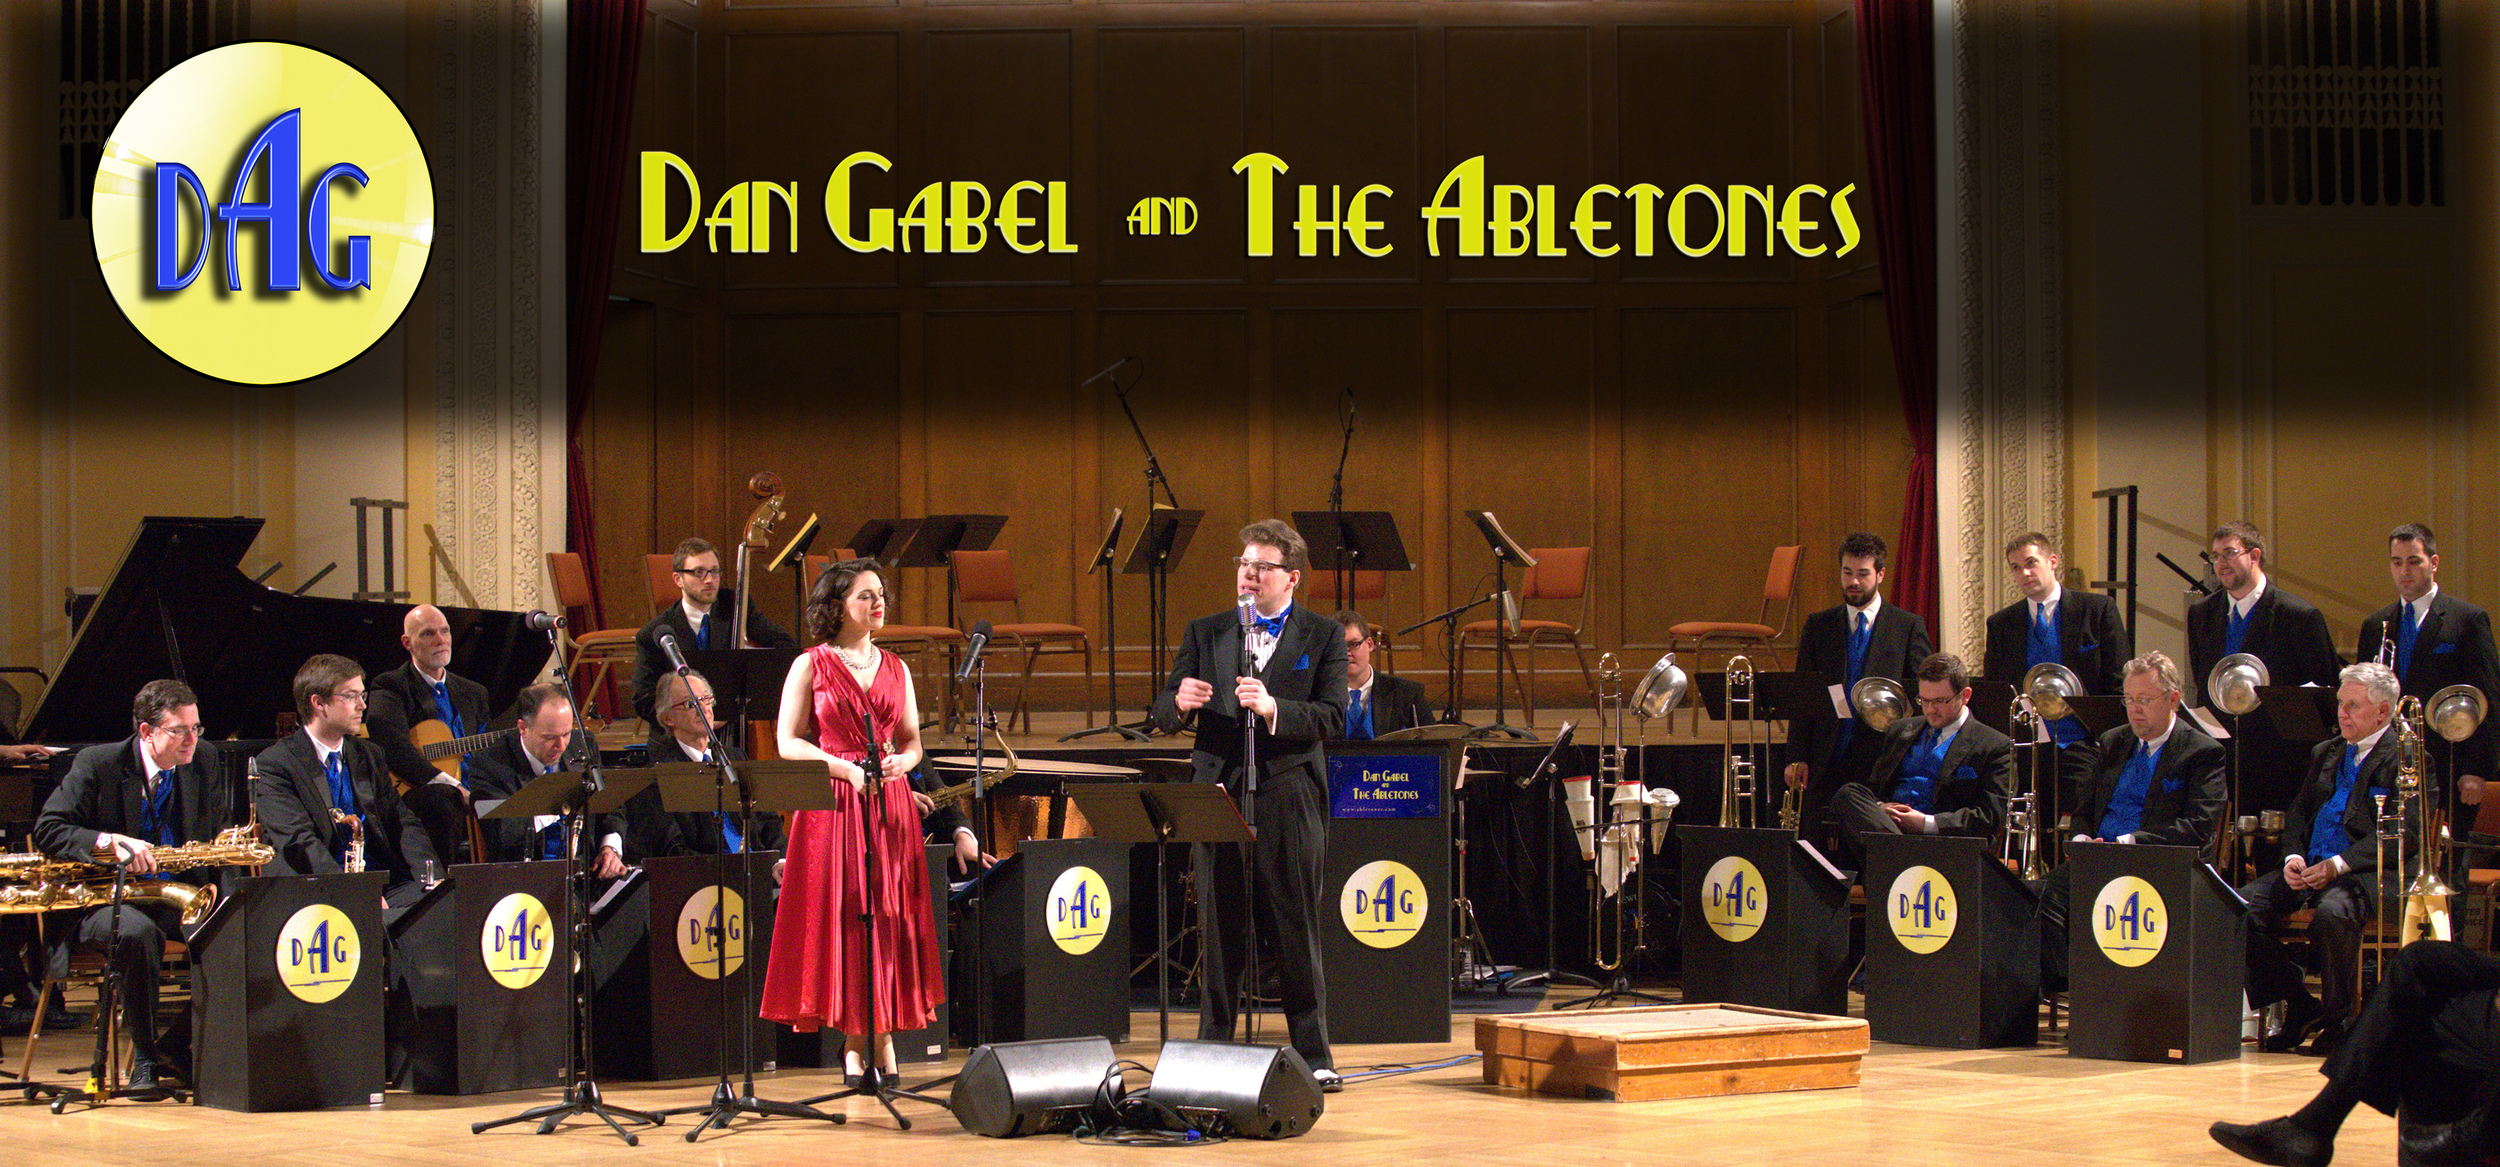 DAN GABEL and The ABLETONES  -  Authentic 18-piece Big Band featuring vocalist Elise Roth